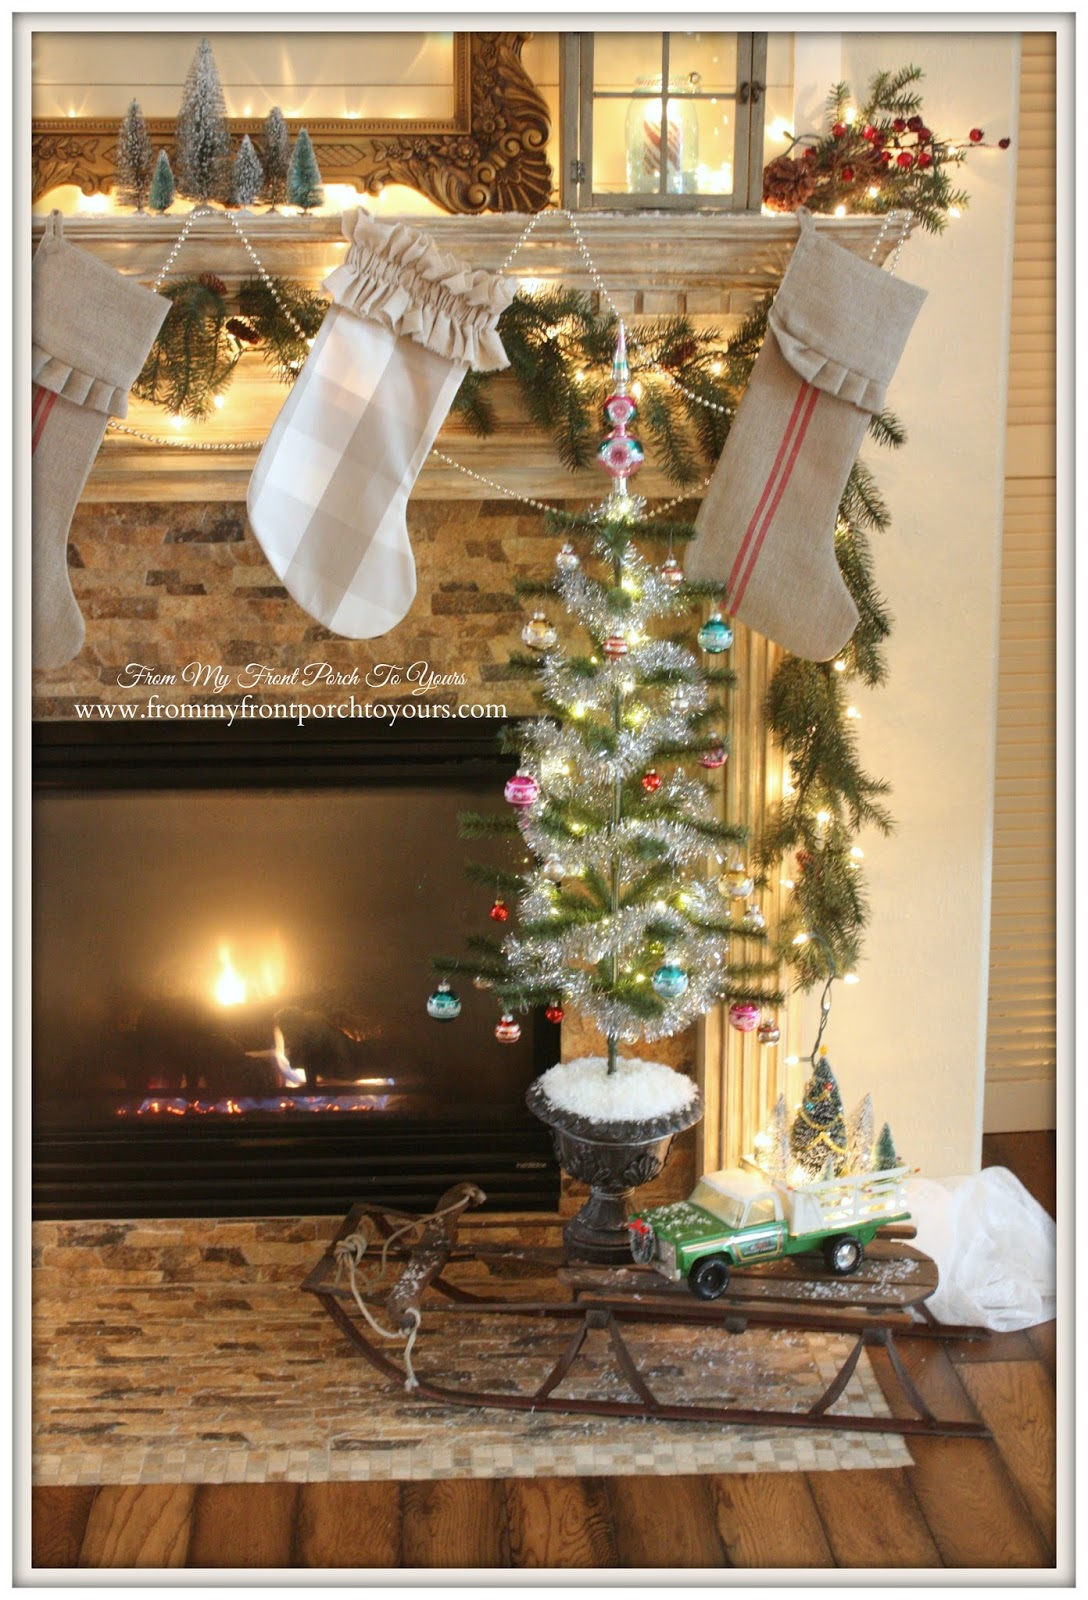 Wire Brush Christmas Tree-French Farmhouse Vintage Christmas Mantel 2014- From My Front Porch To Yours